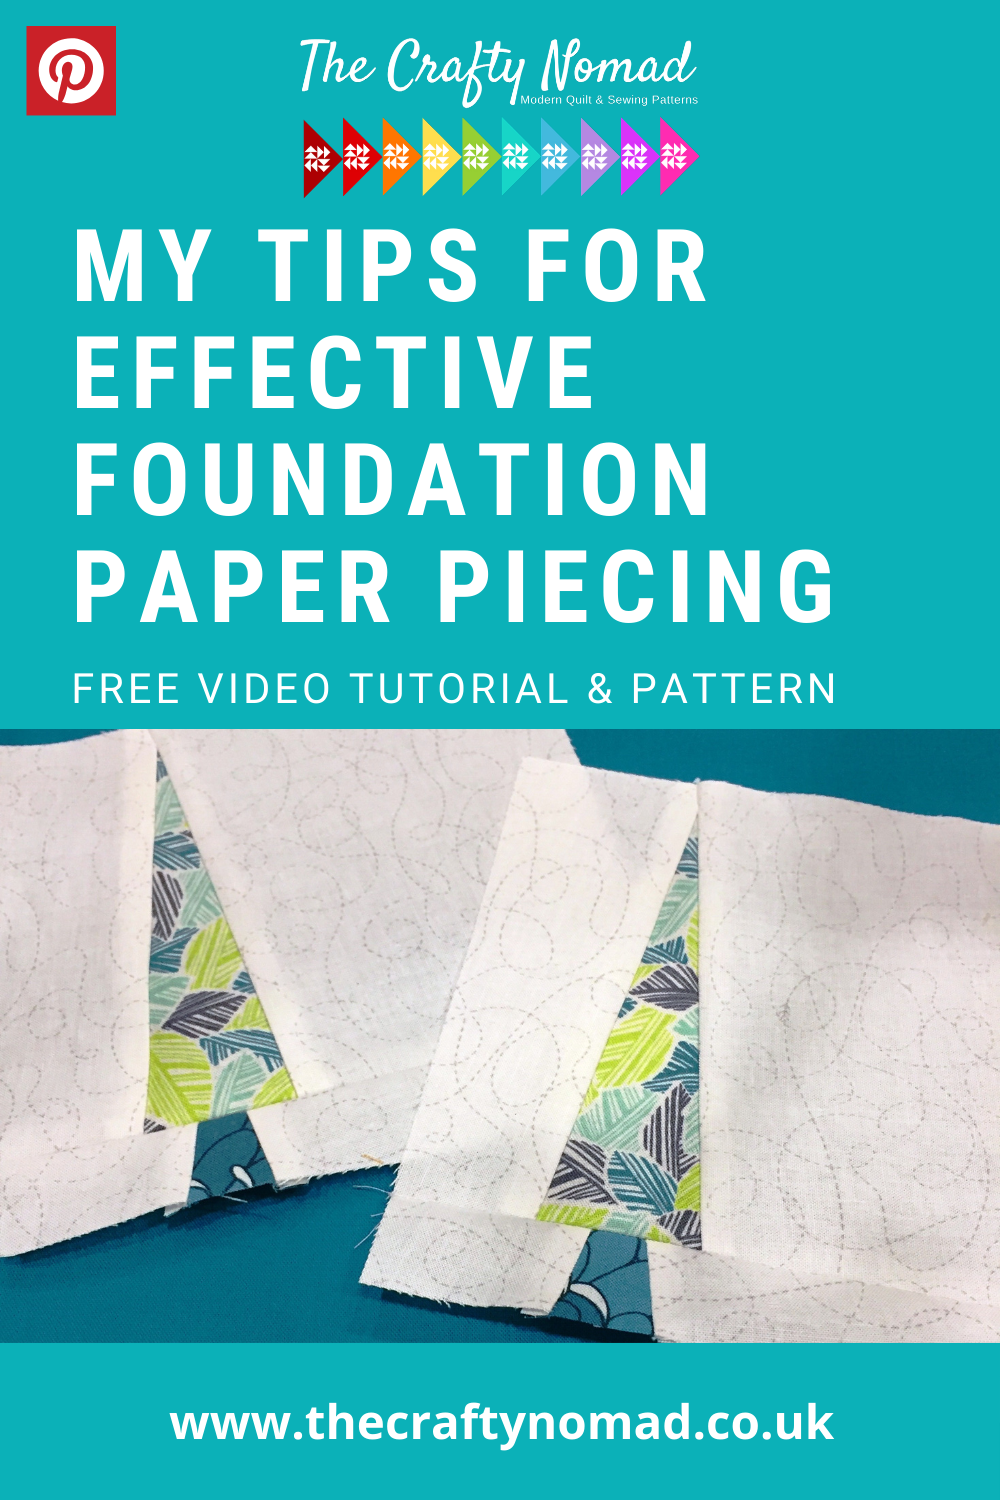 Simple Tree Free Foundation Paper Piece Pattern Video Tutorial The Crafty Nomad Sewing Classes Quilt Patterns